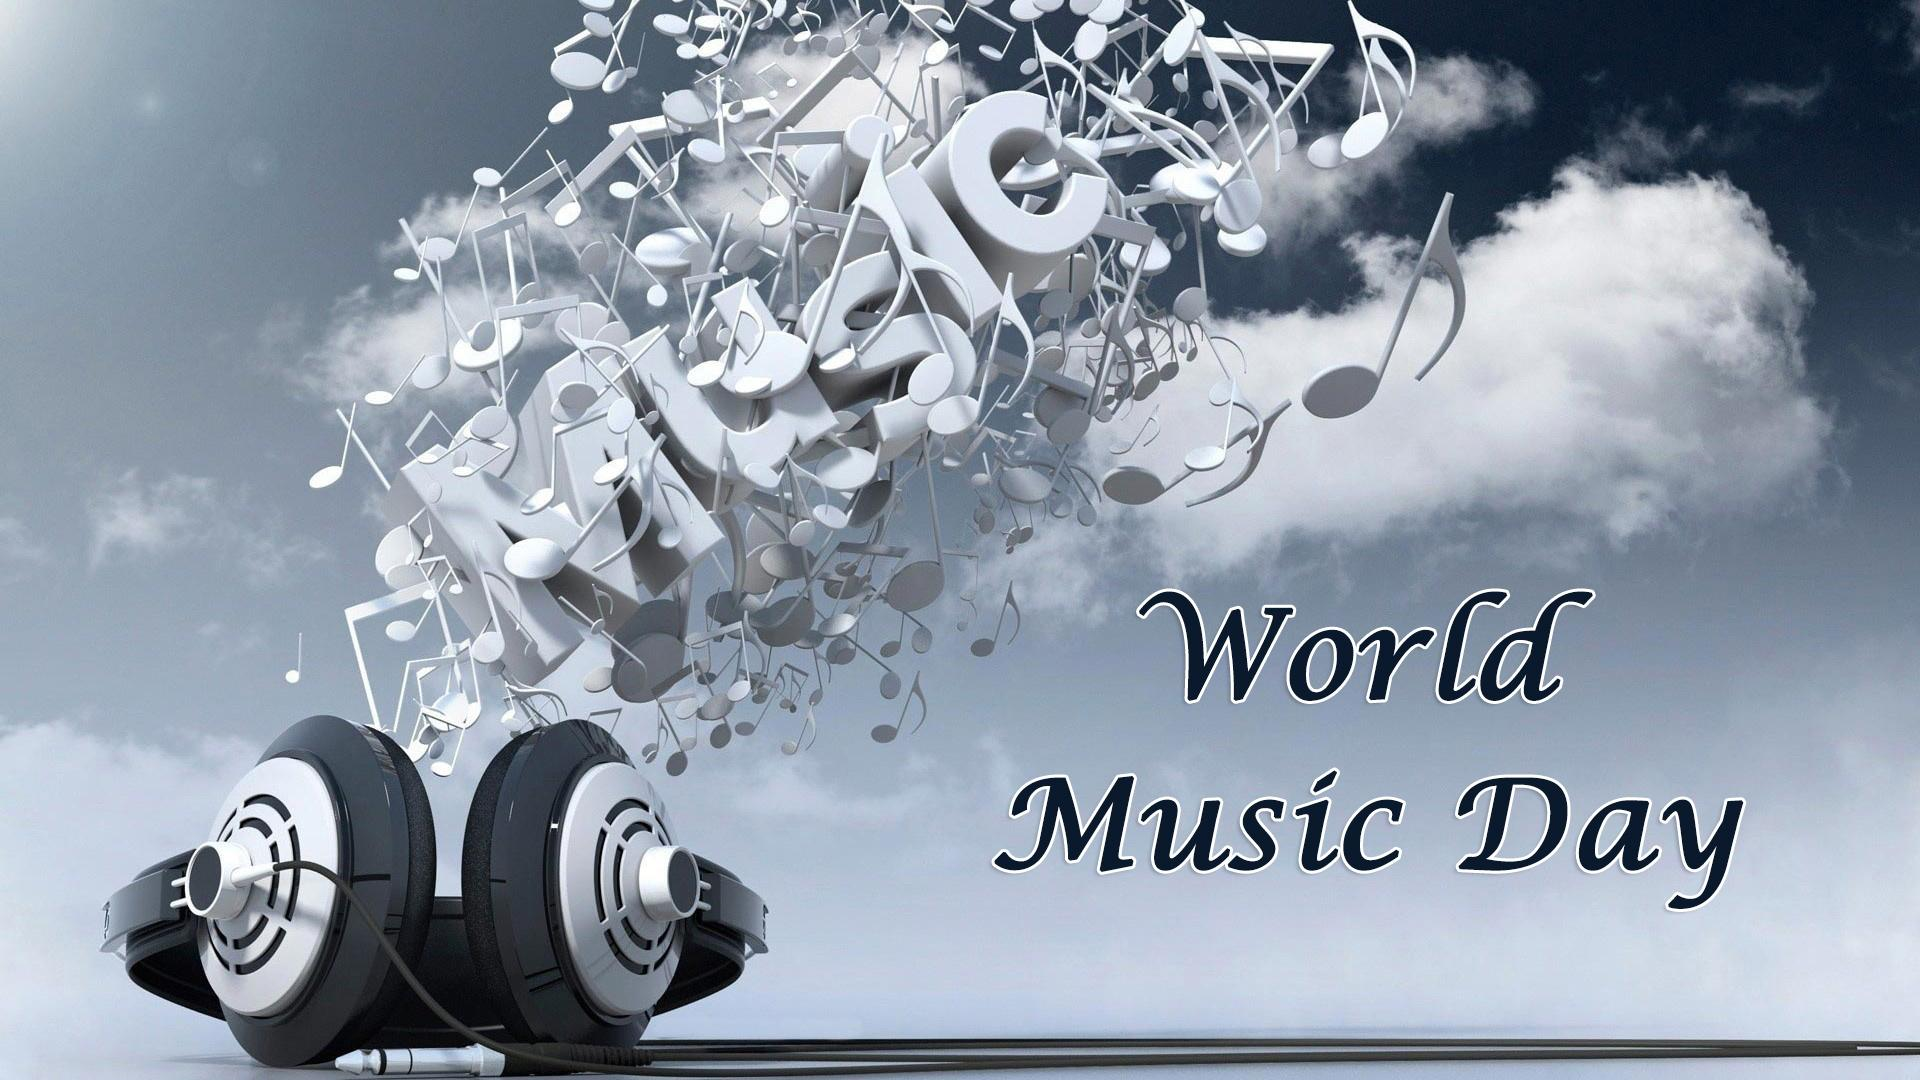 World Music Day Headphones Music Black Backgrounds Akg